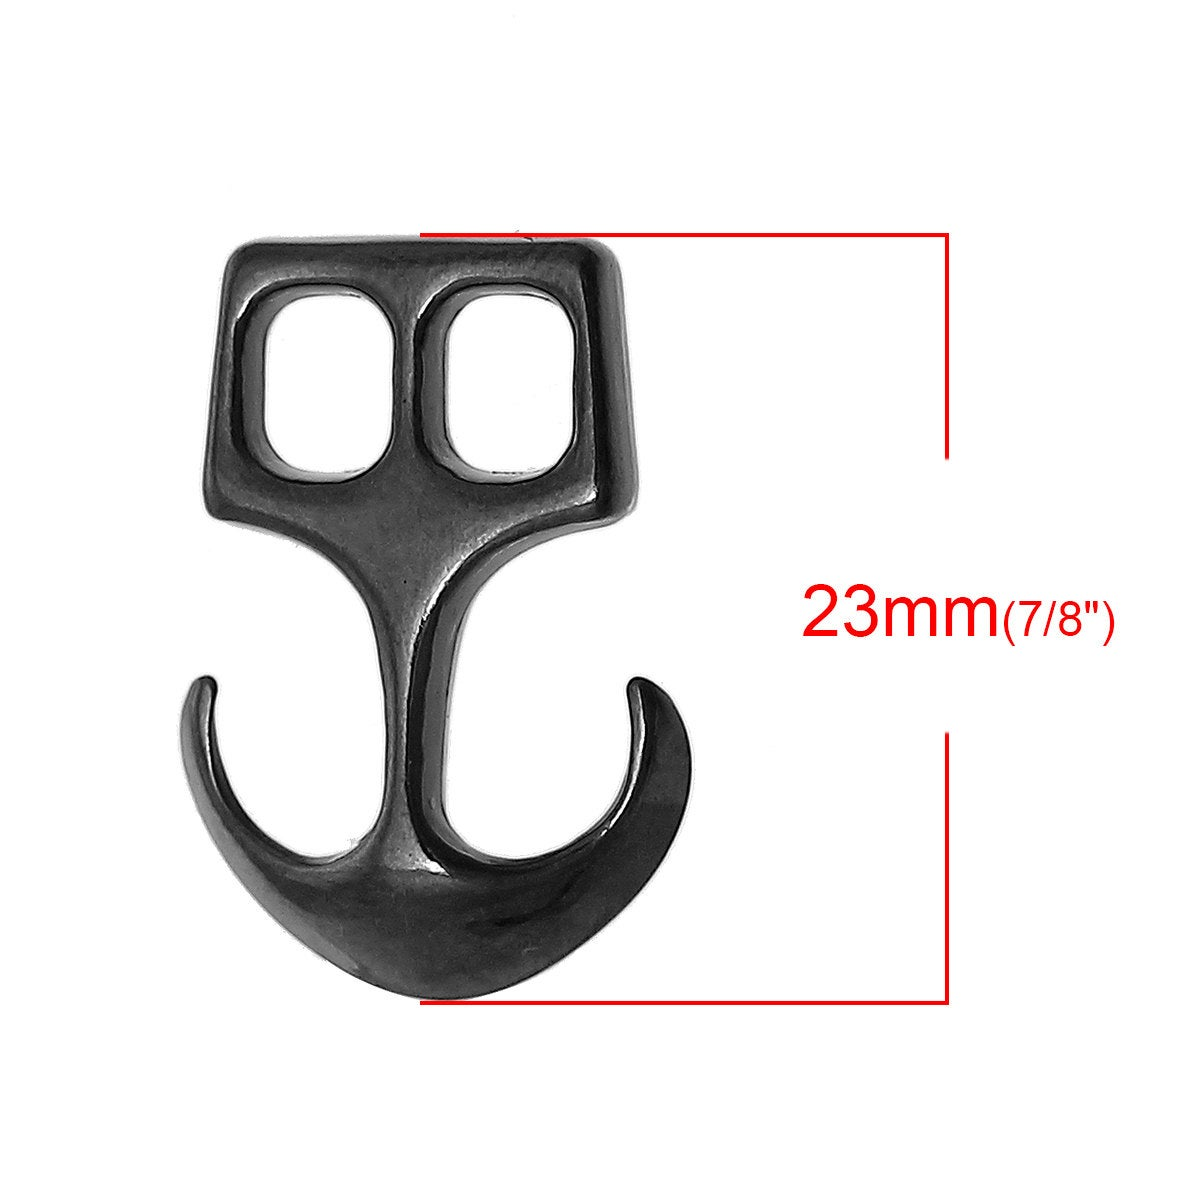 "Gunmetal Anchor Clasp Connector - Black - 23mm x 16mm (7/8"" x  5/8"") - Black Anchor Clasp for Leather"